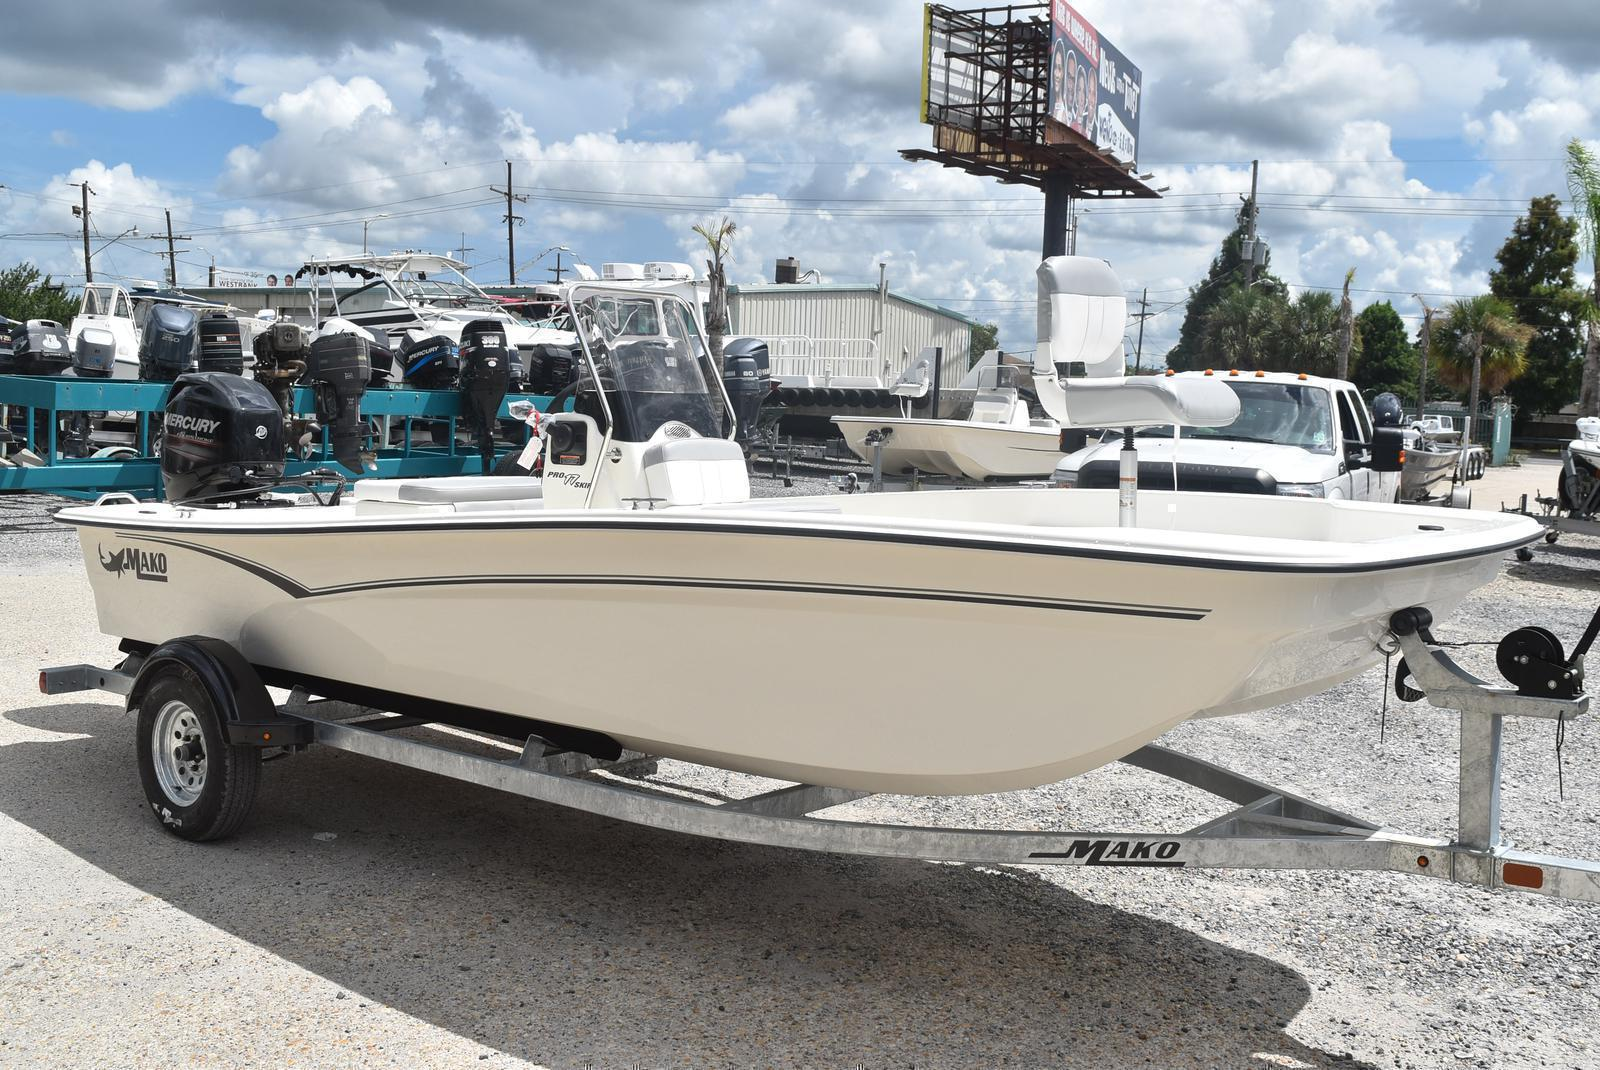 2020 Mako boat for sale, model of the boat is Pro Skiff 17, 75 ELPT & Image # 699 of 702